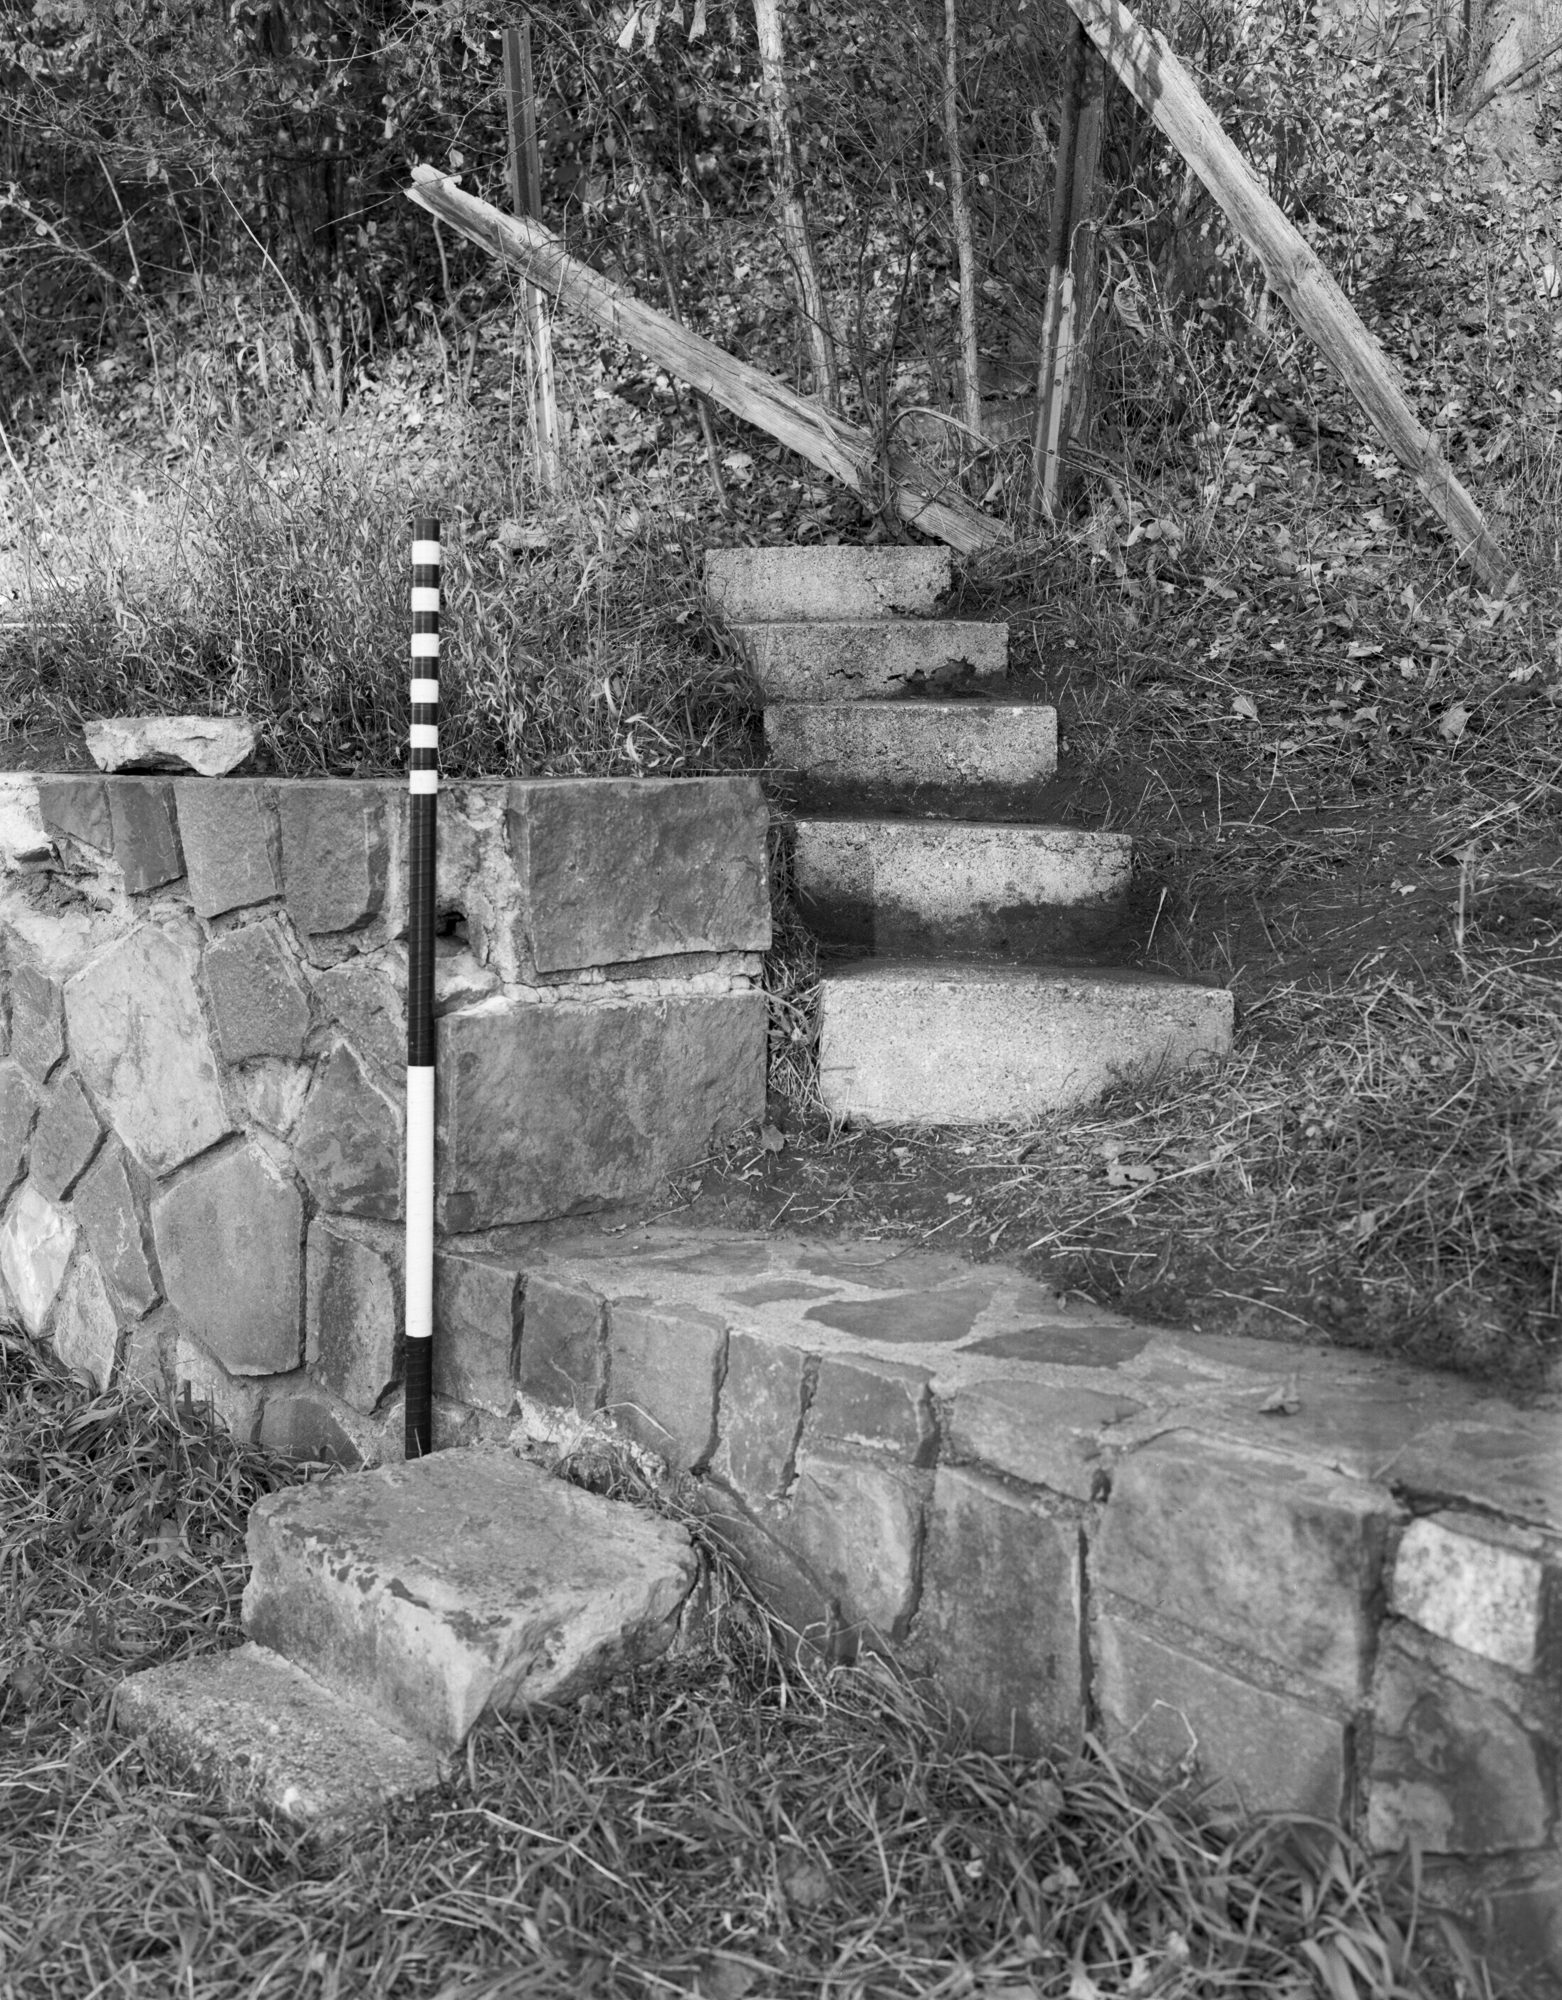 Steps to Picnic Area - MHPR NL-CTT-006-10 (Please credit Daniel R. Pratt and the Minnesota Historic Property Record)